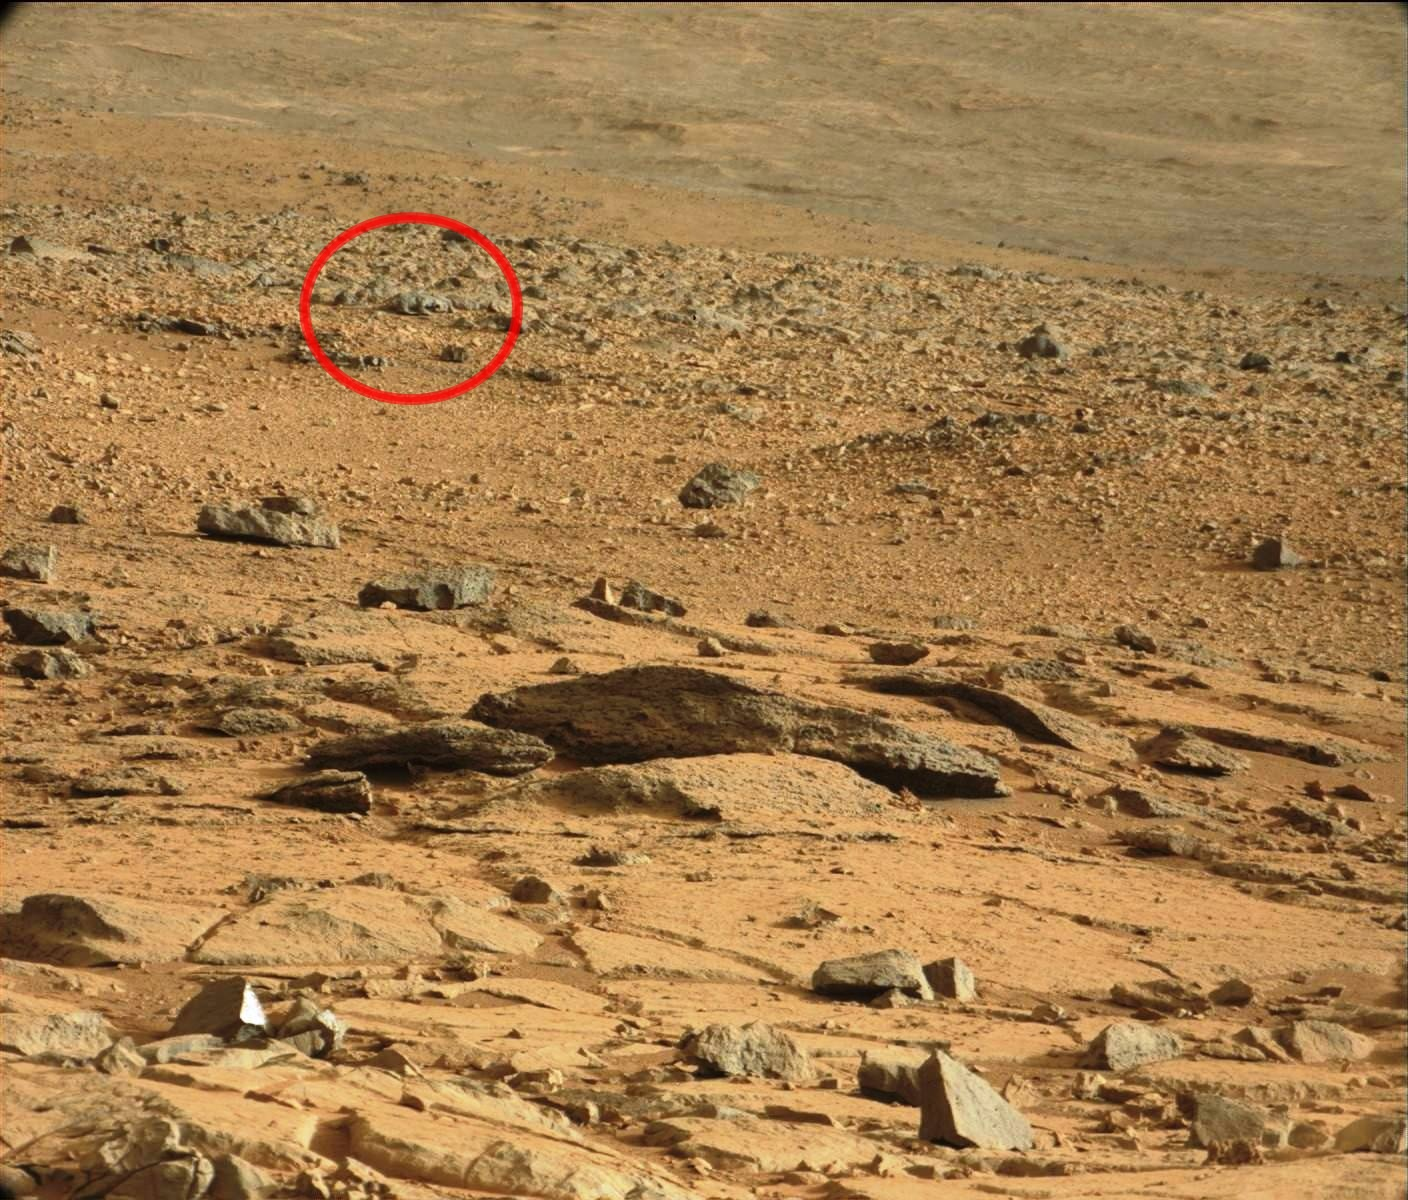 Ferret photographed on Mars by Curiosity - Feb 27, 2013